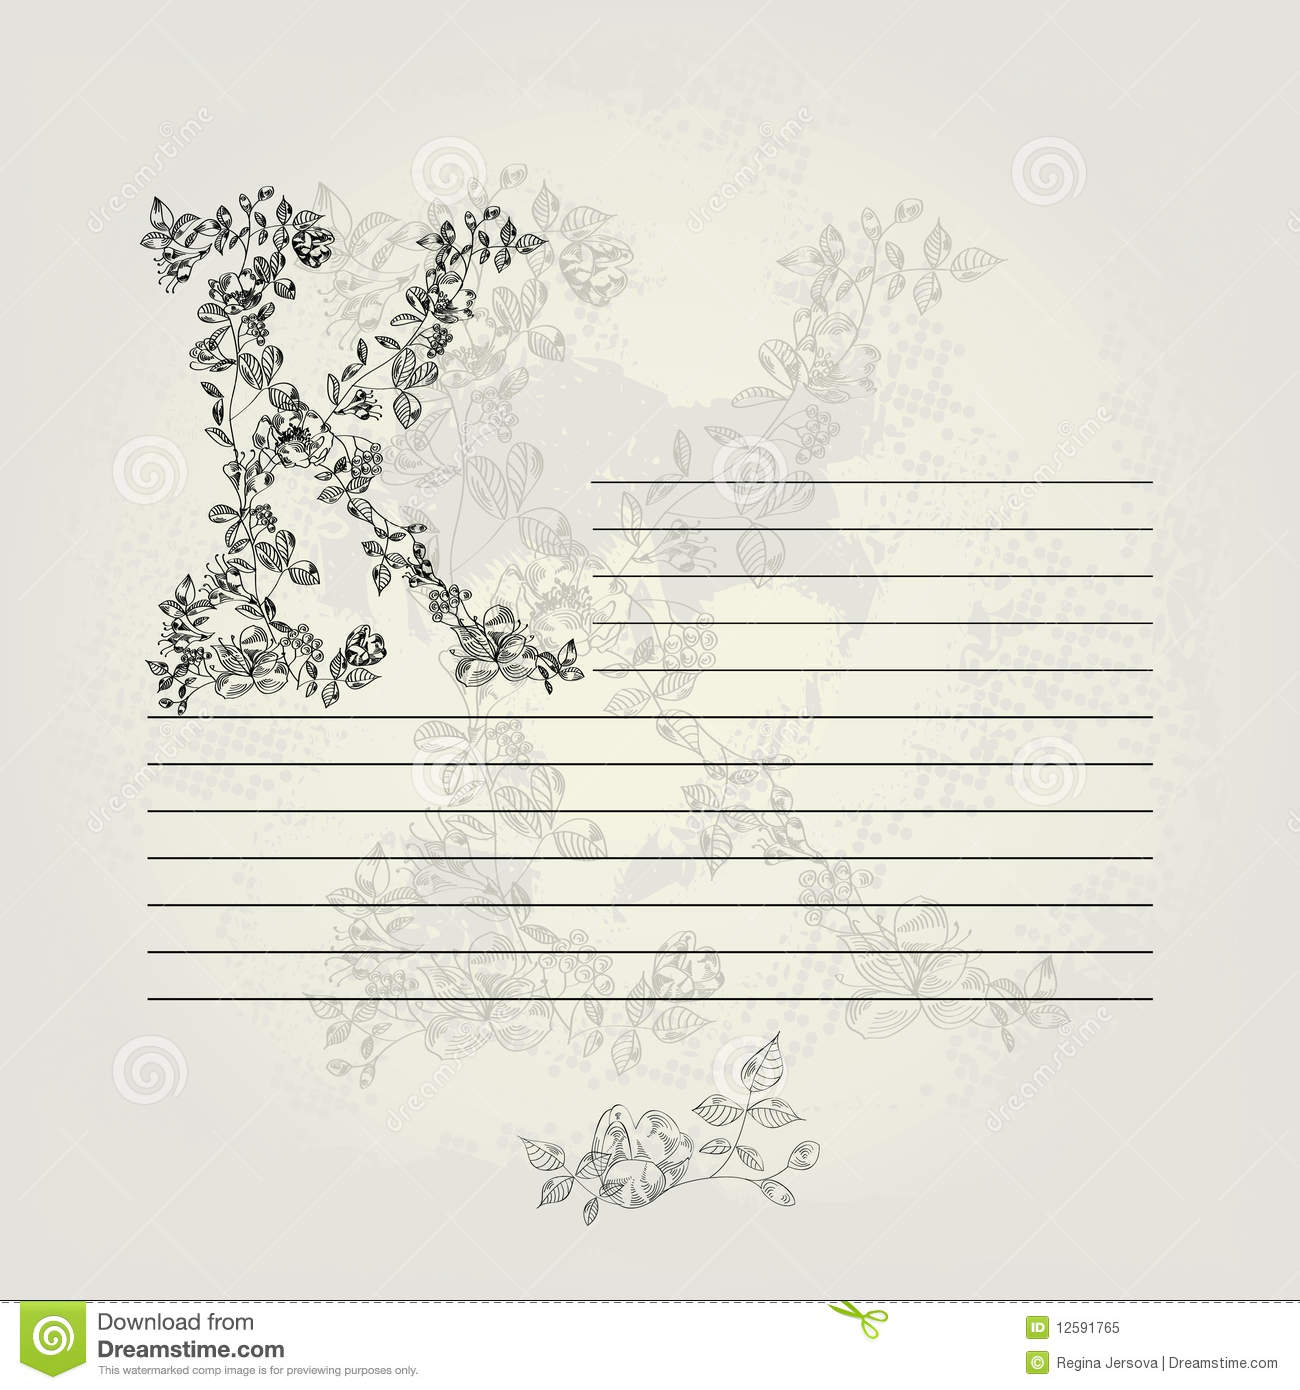 template for note paper with letter k stock vector illustration of